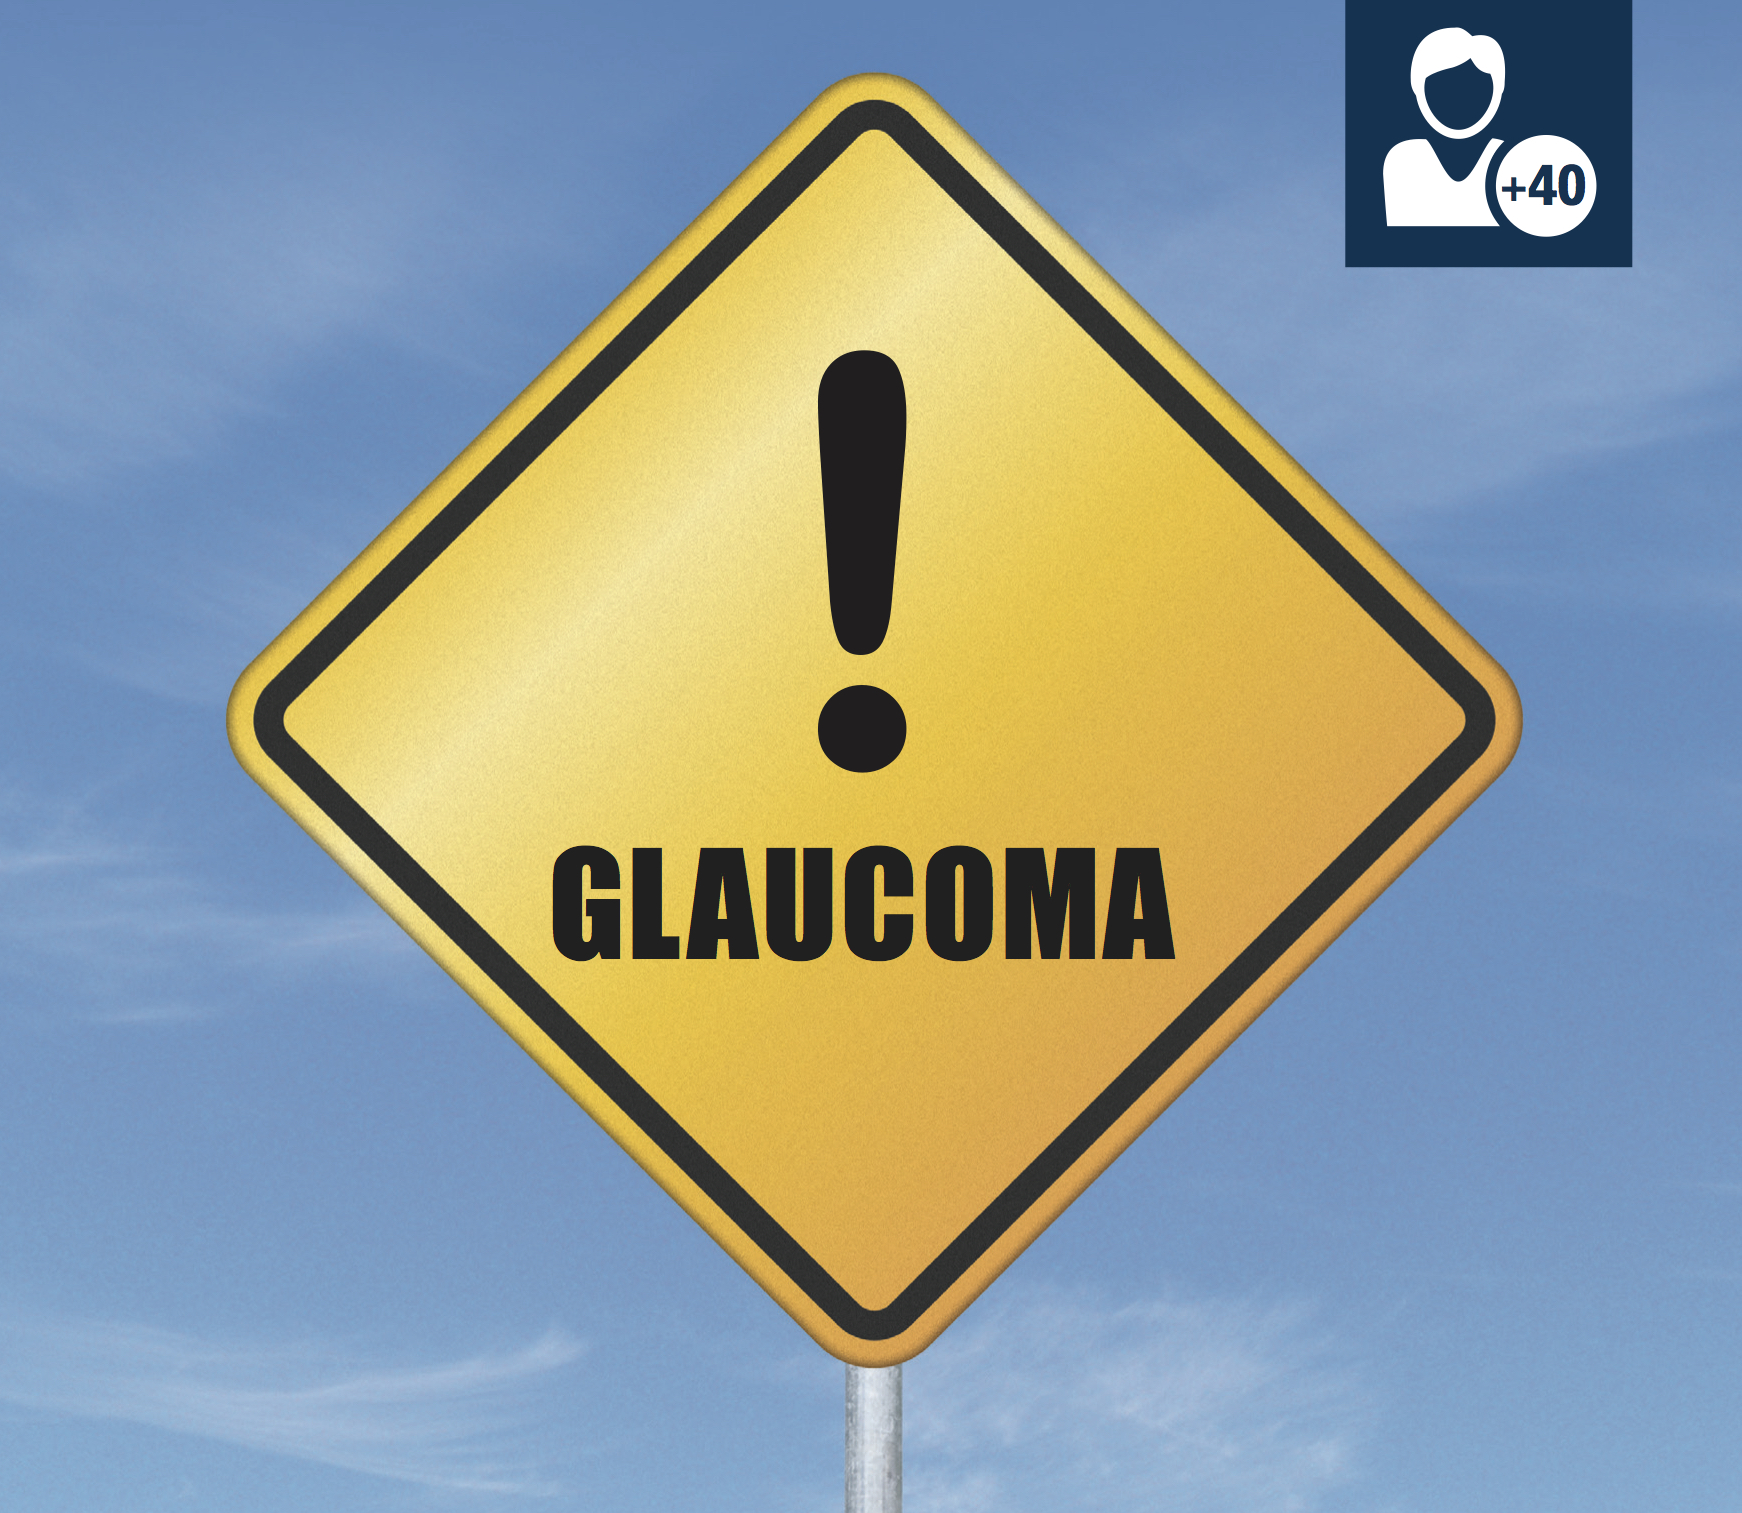 Don't lose sight of glaucoma